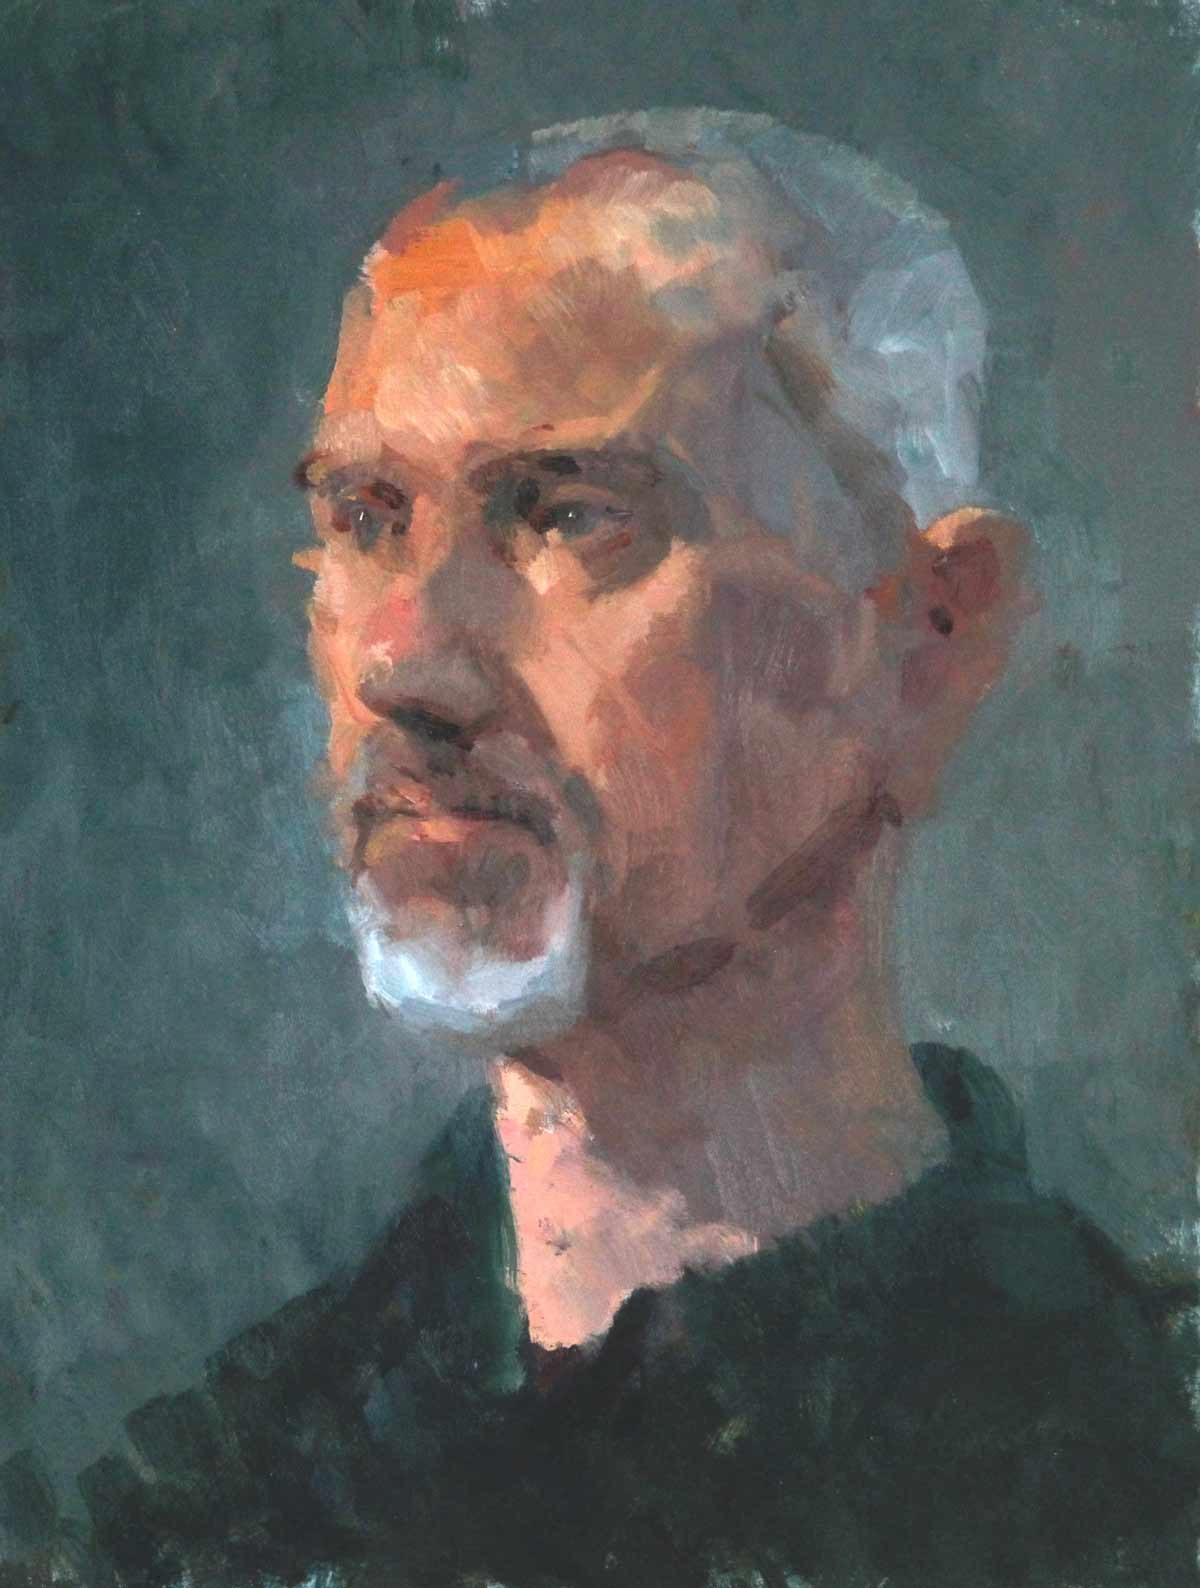 Paul-portrait